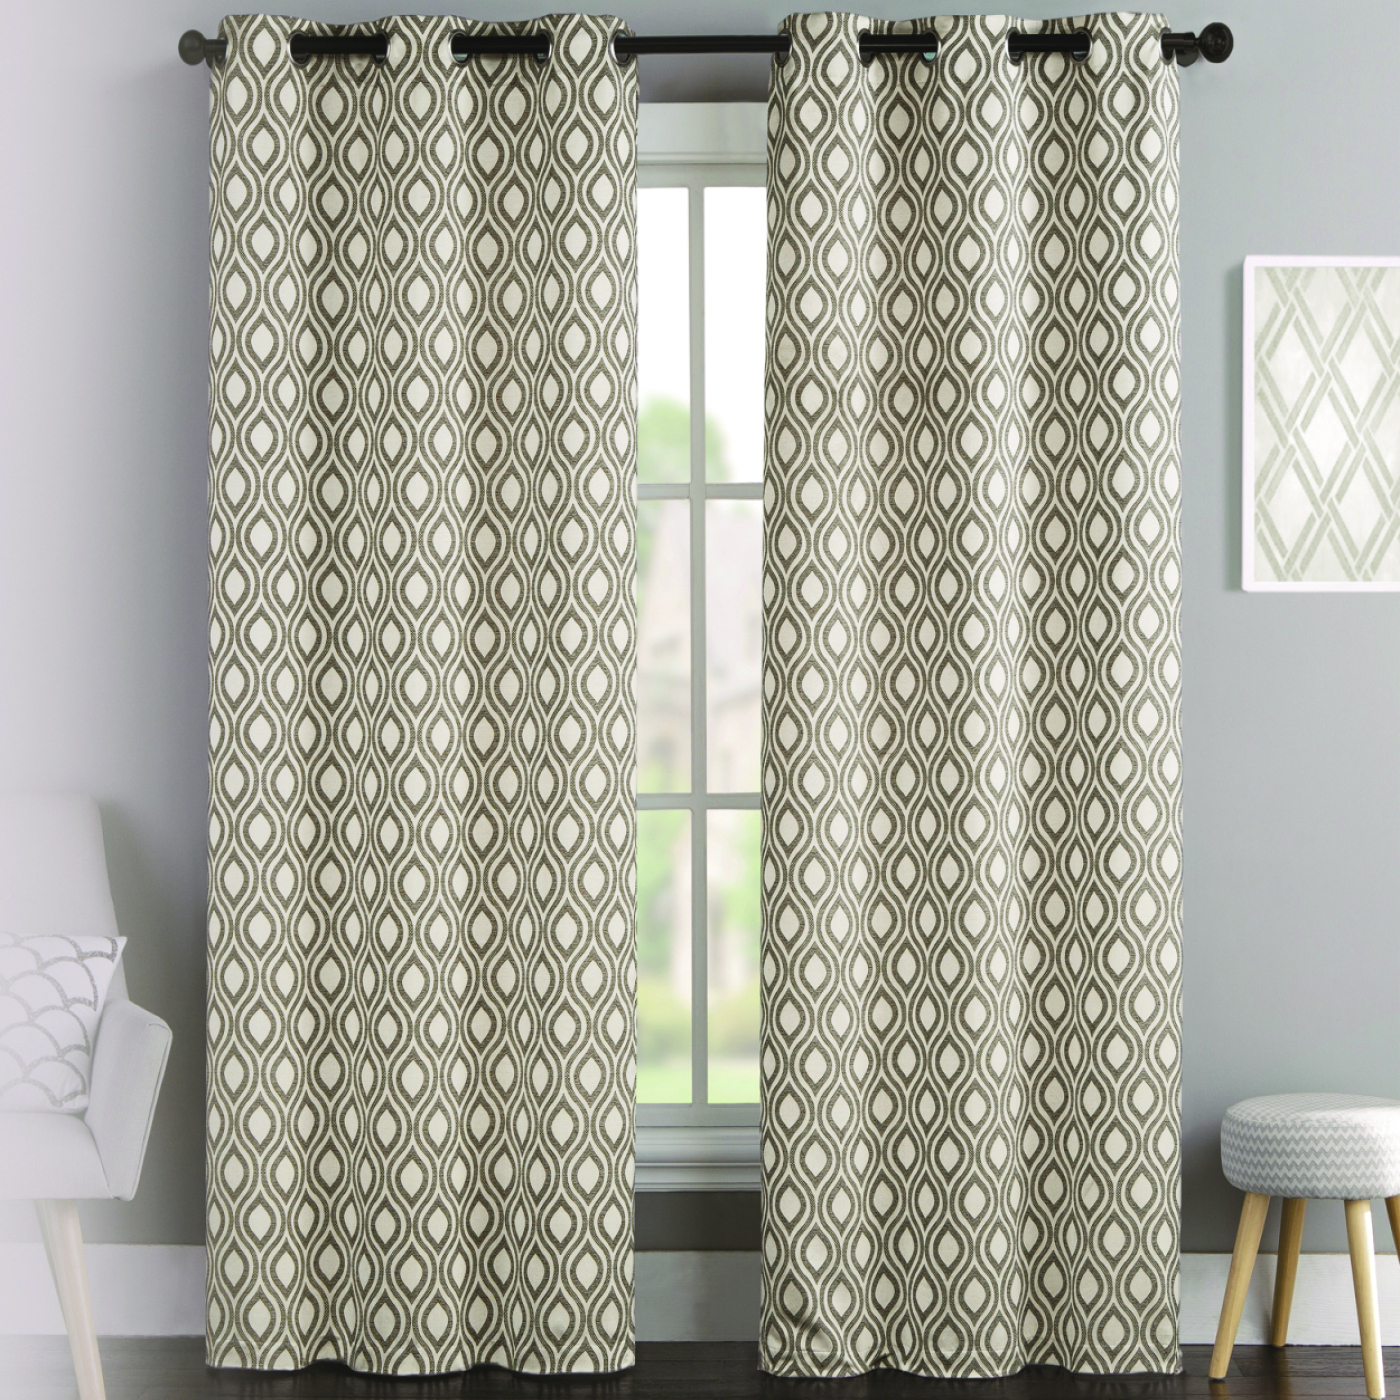 Intersect Grommet Woven Print Window Curtain Panels Regarding Current Mystique Lattice Grommet Curtain Panel Pair (View 13 of 20)